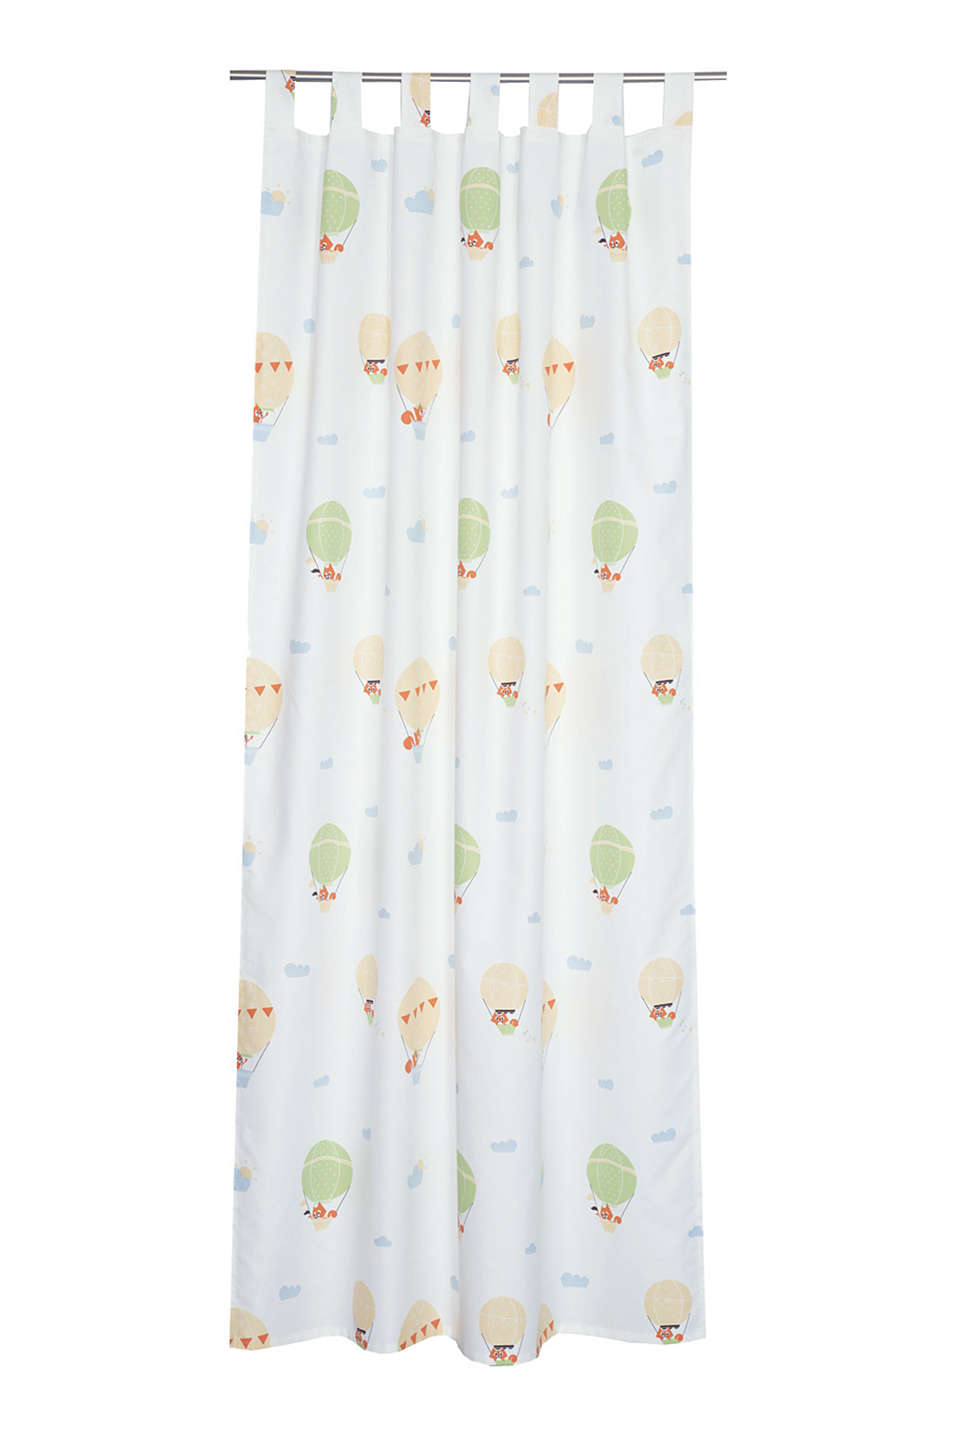 Esprit kids tab top curtain blended cotton at our for Kids curtain company